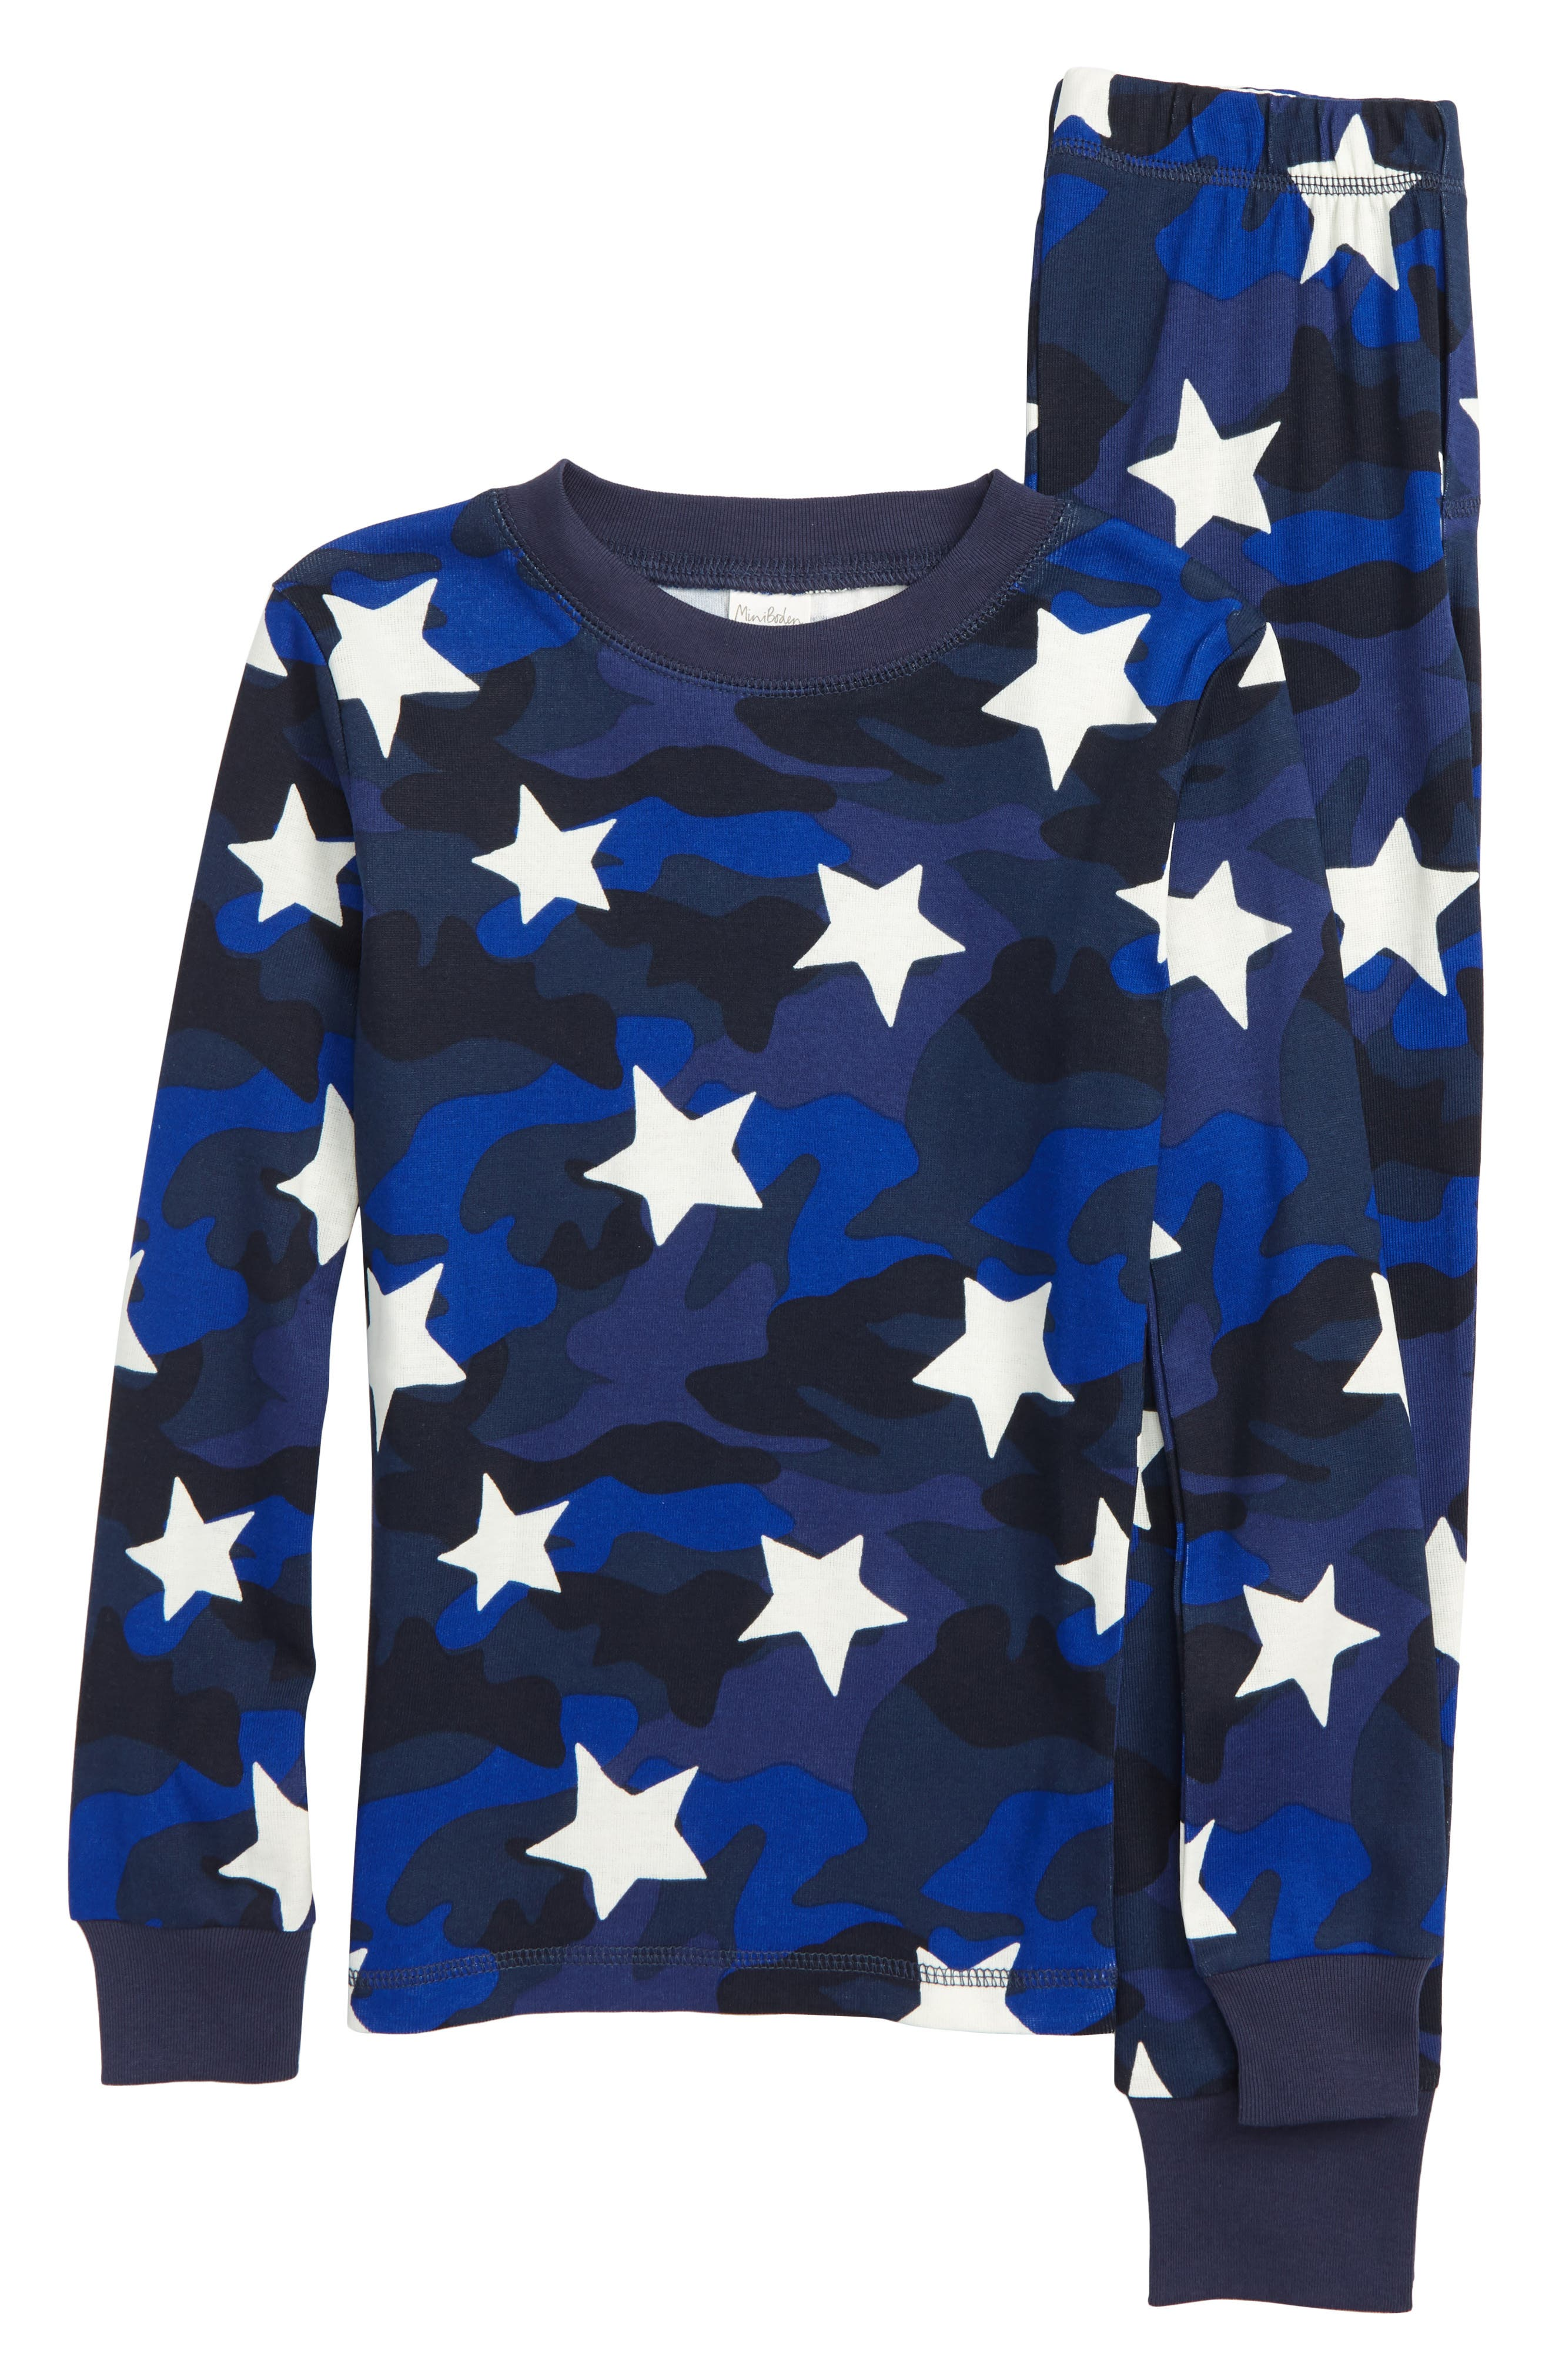 Glow-in-the-Dark Fitted Two-Piece Pajamas,                         Main,                         color, NAVY CAMOUFLAGE STAR